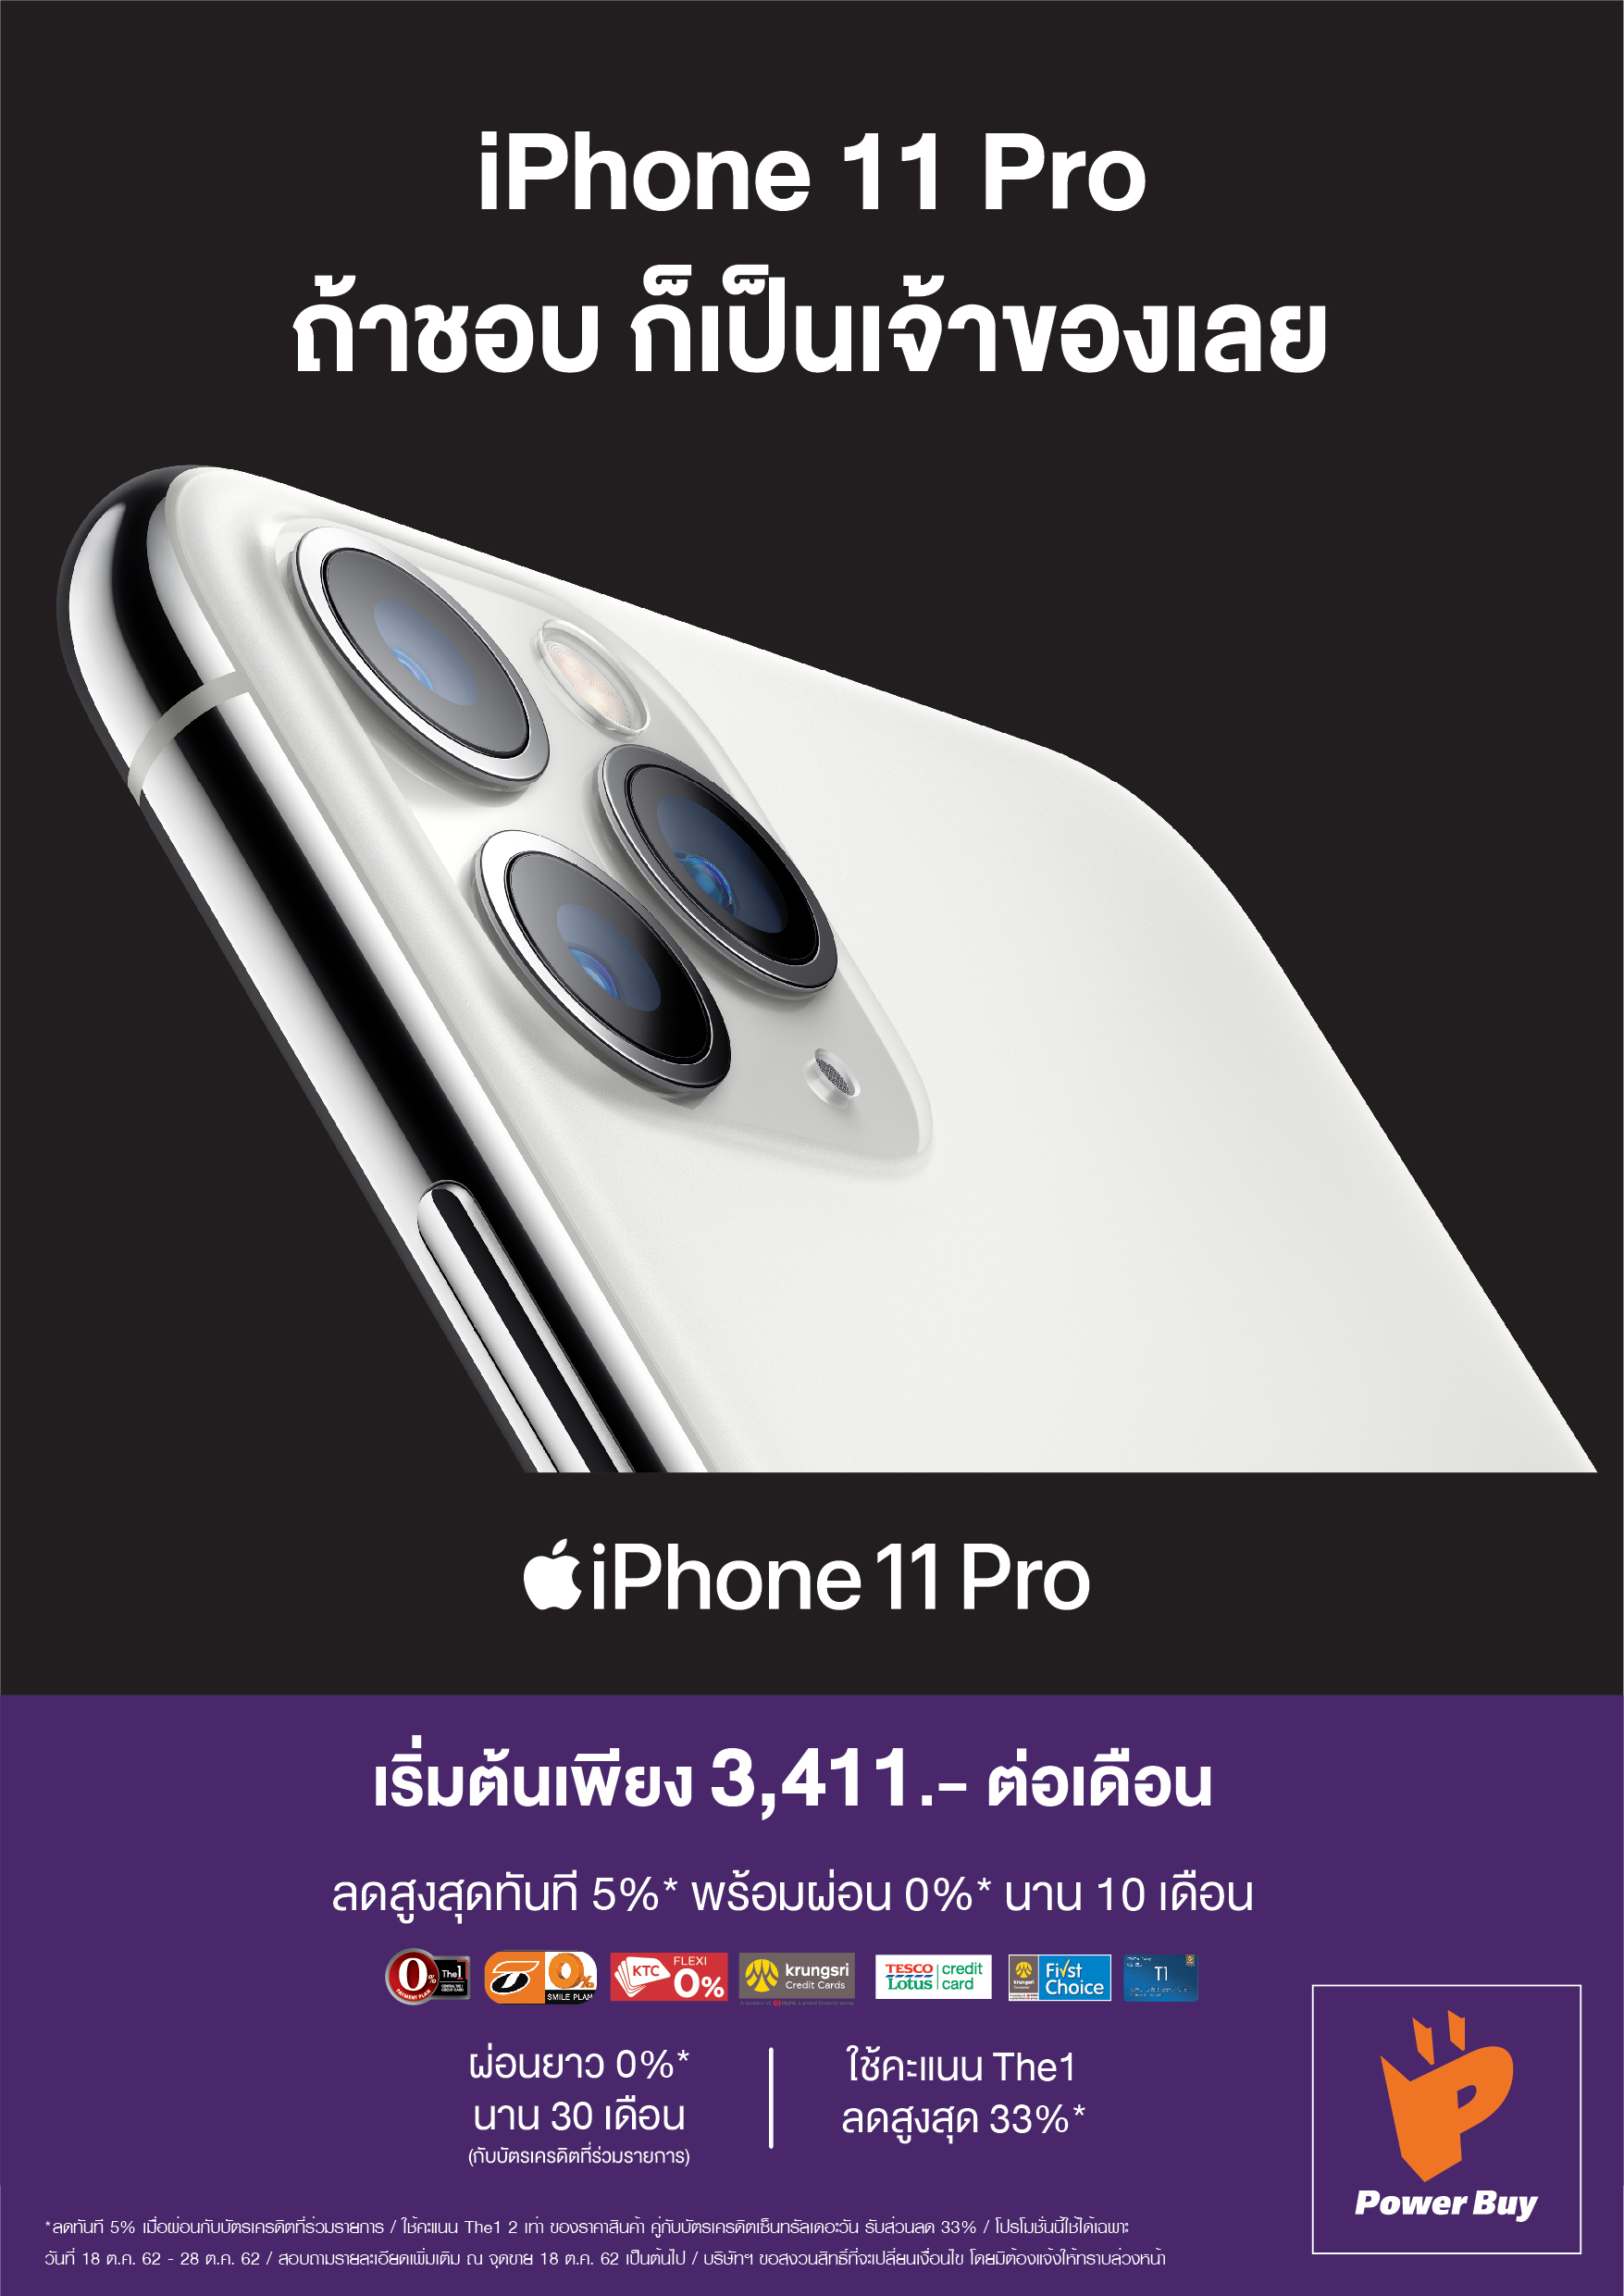 PWB_iPhone 11 _Pre-order photo 1